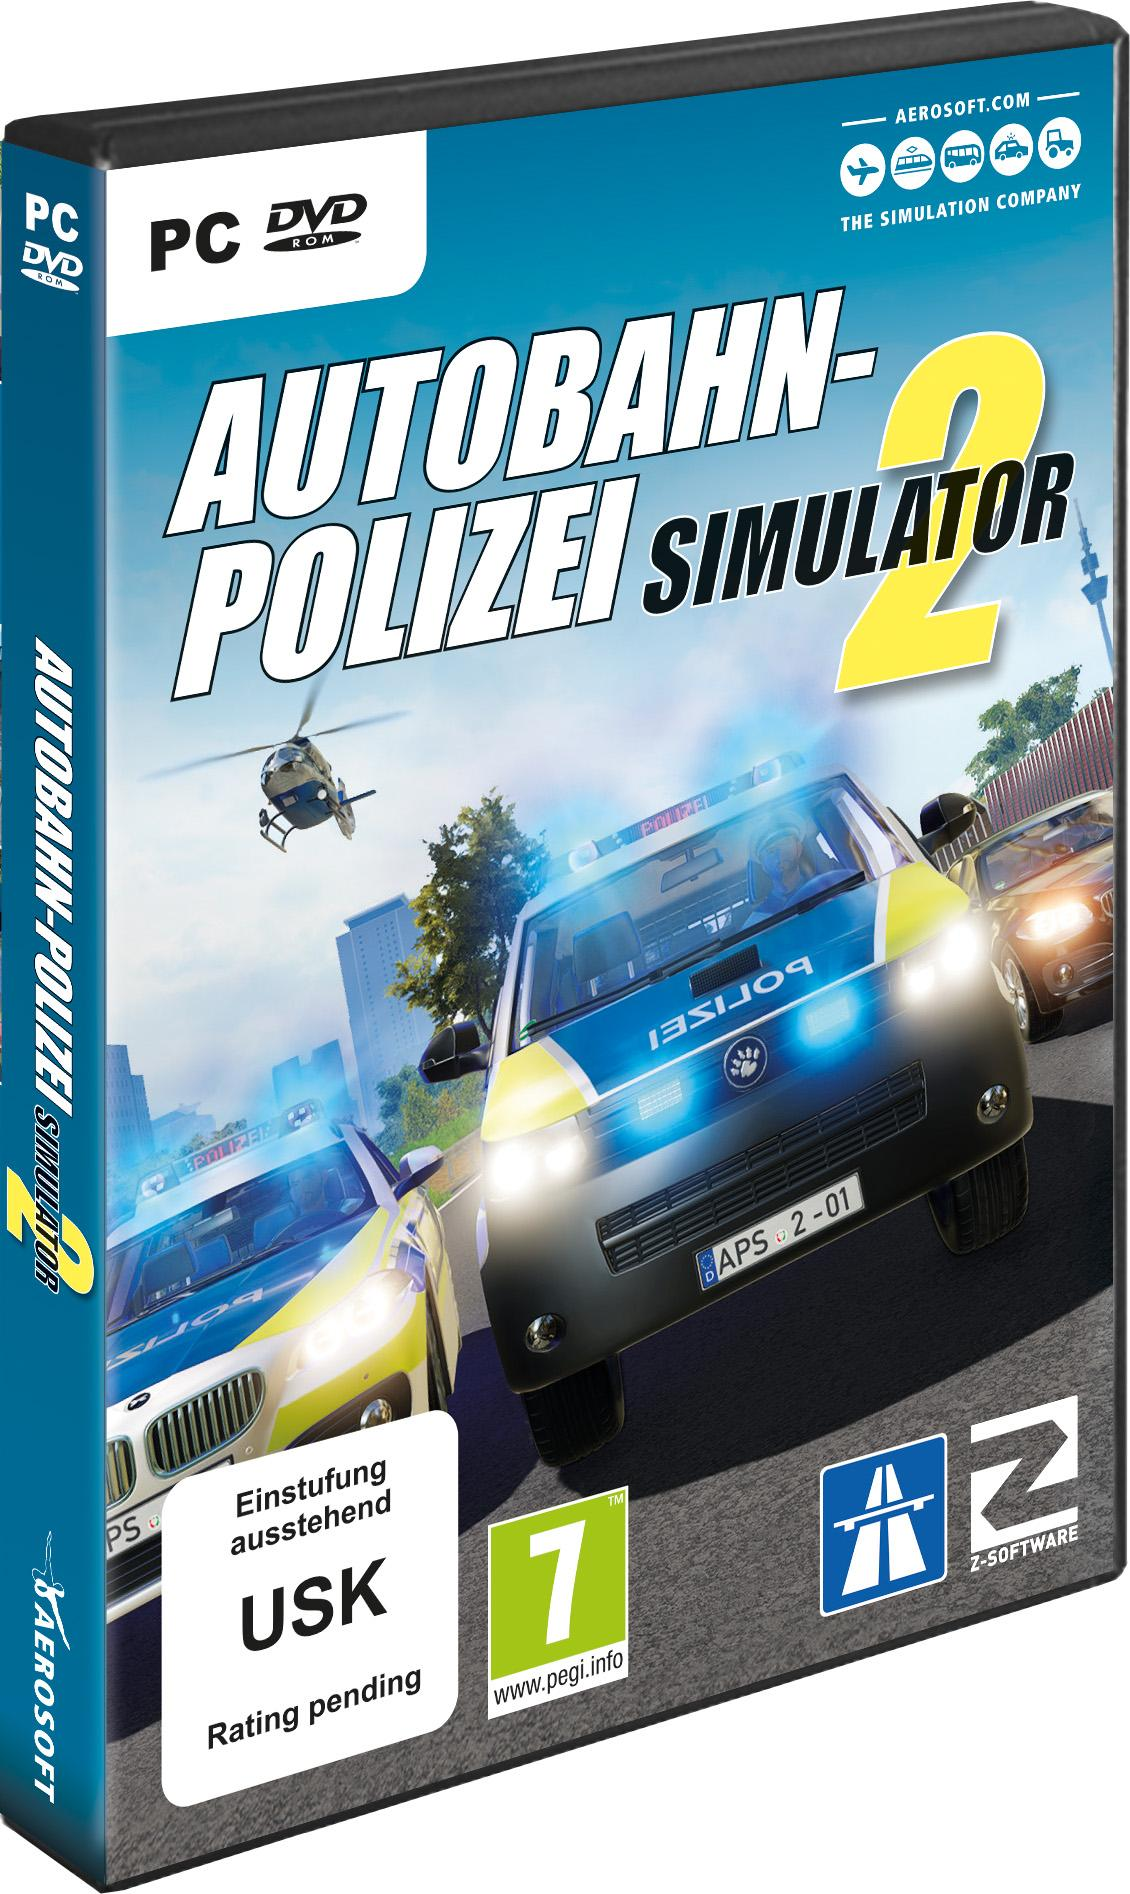 Autobahn-Polizei Simulator 2 - [PC]: Amazon.de: Games